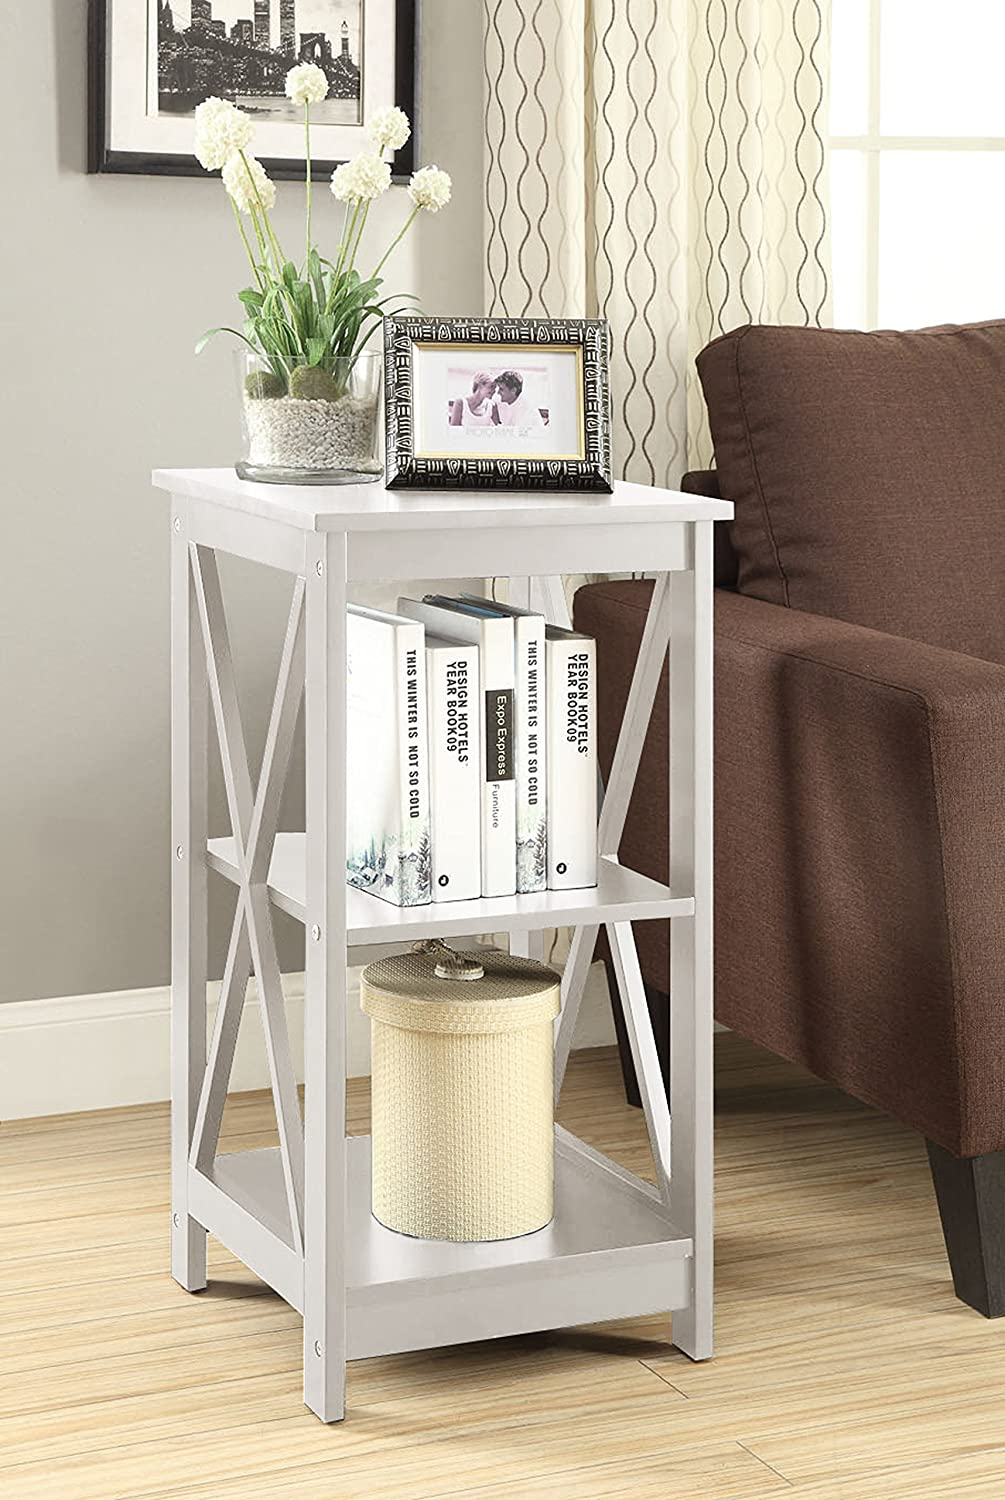 Amazon.com: Convenience Concepts Oxford End Table, White: Kitchen U0026 Dining